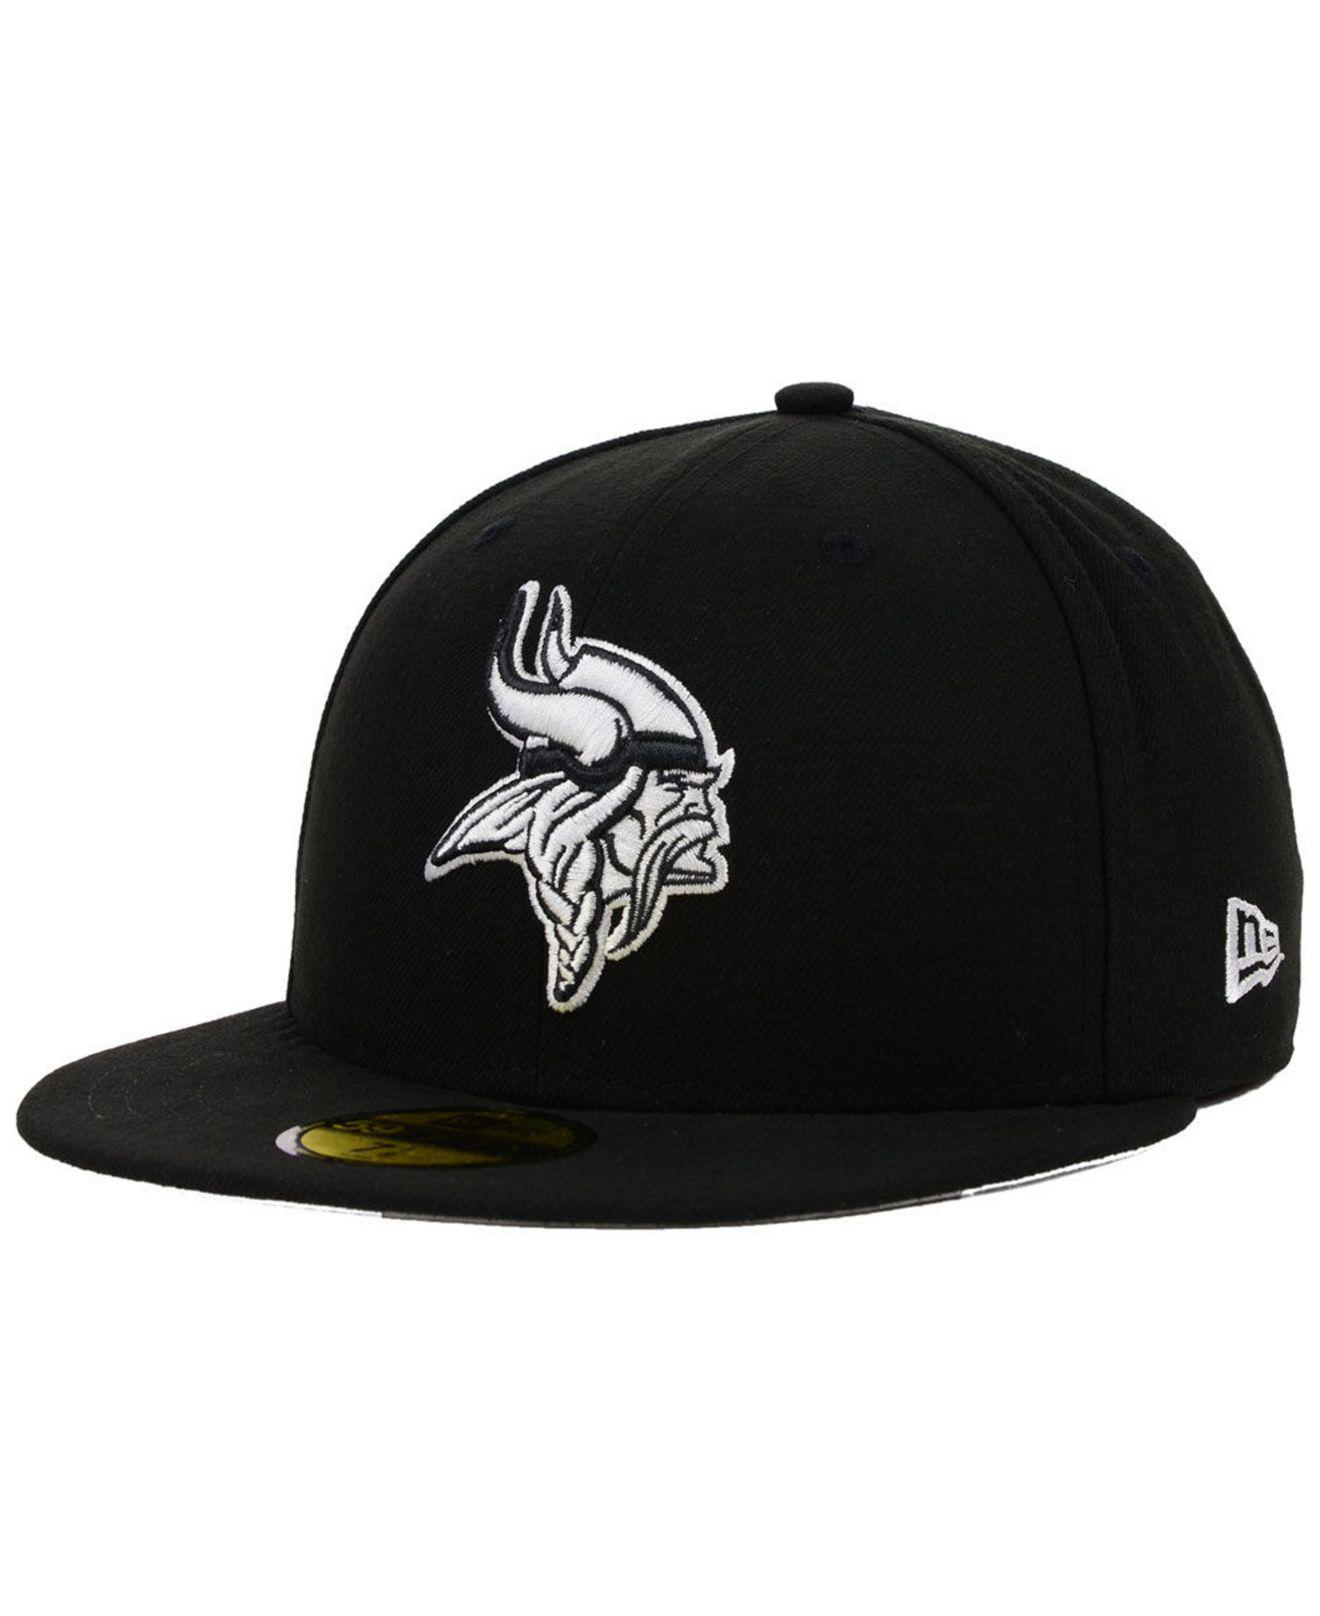 KTZ - Minnesota Vikings Black And White 59fifty Fitted Cap for Men - Lyst.  View fullscreen 4910a2f2c